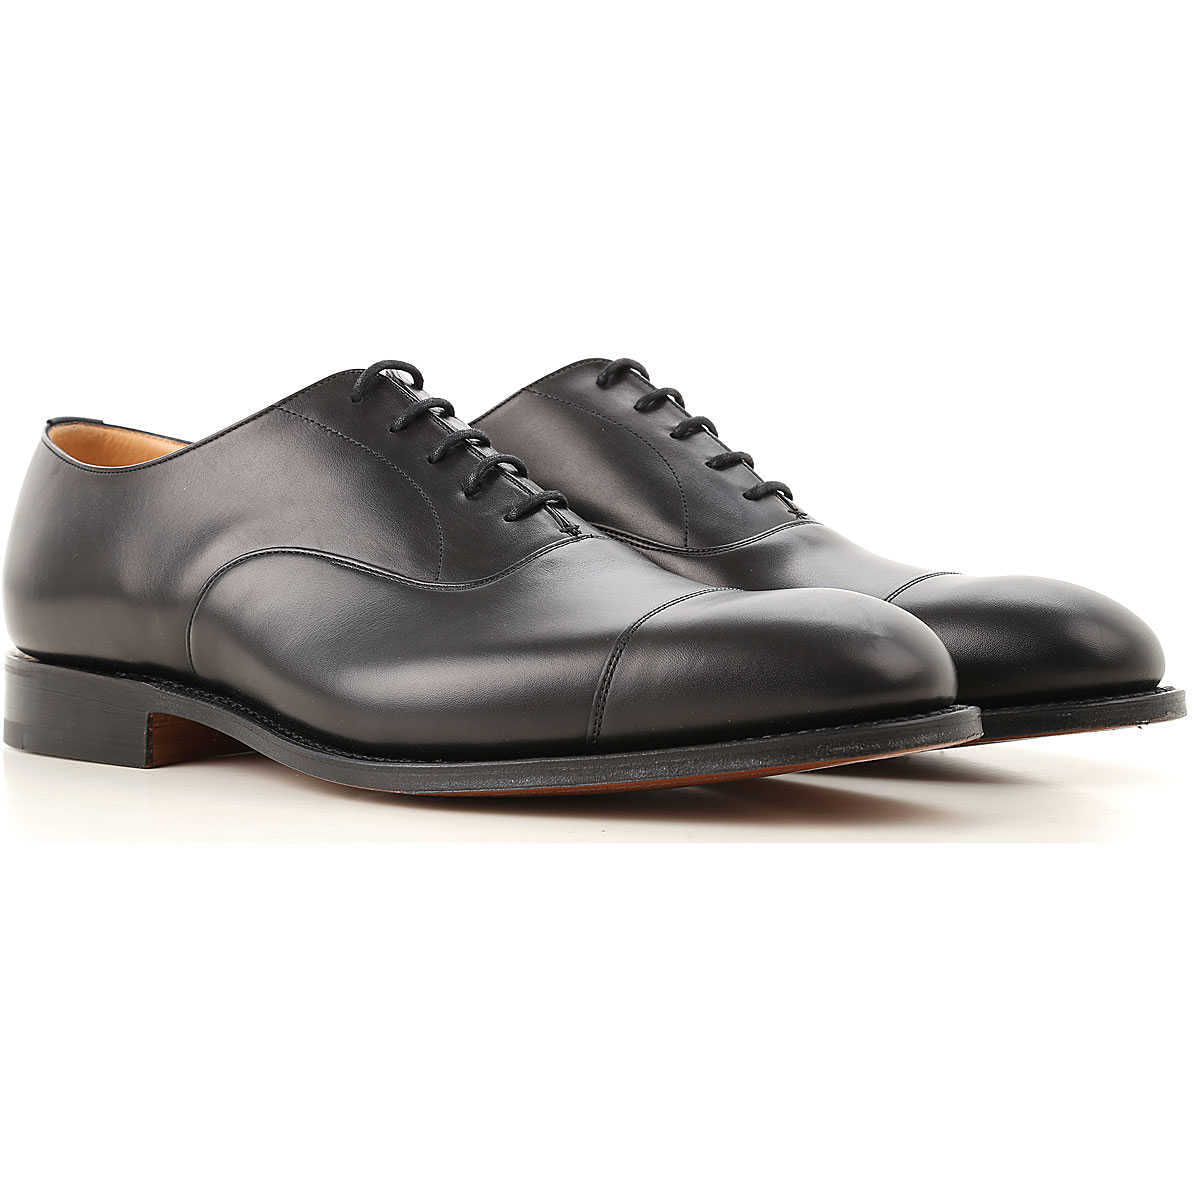 Church's Lace Up Shoes for Men Oxfords 11 7.5 9 Derbies and Brogues UK - GOOFASH